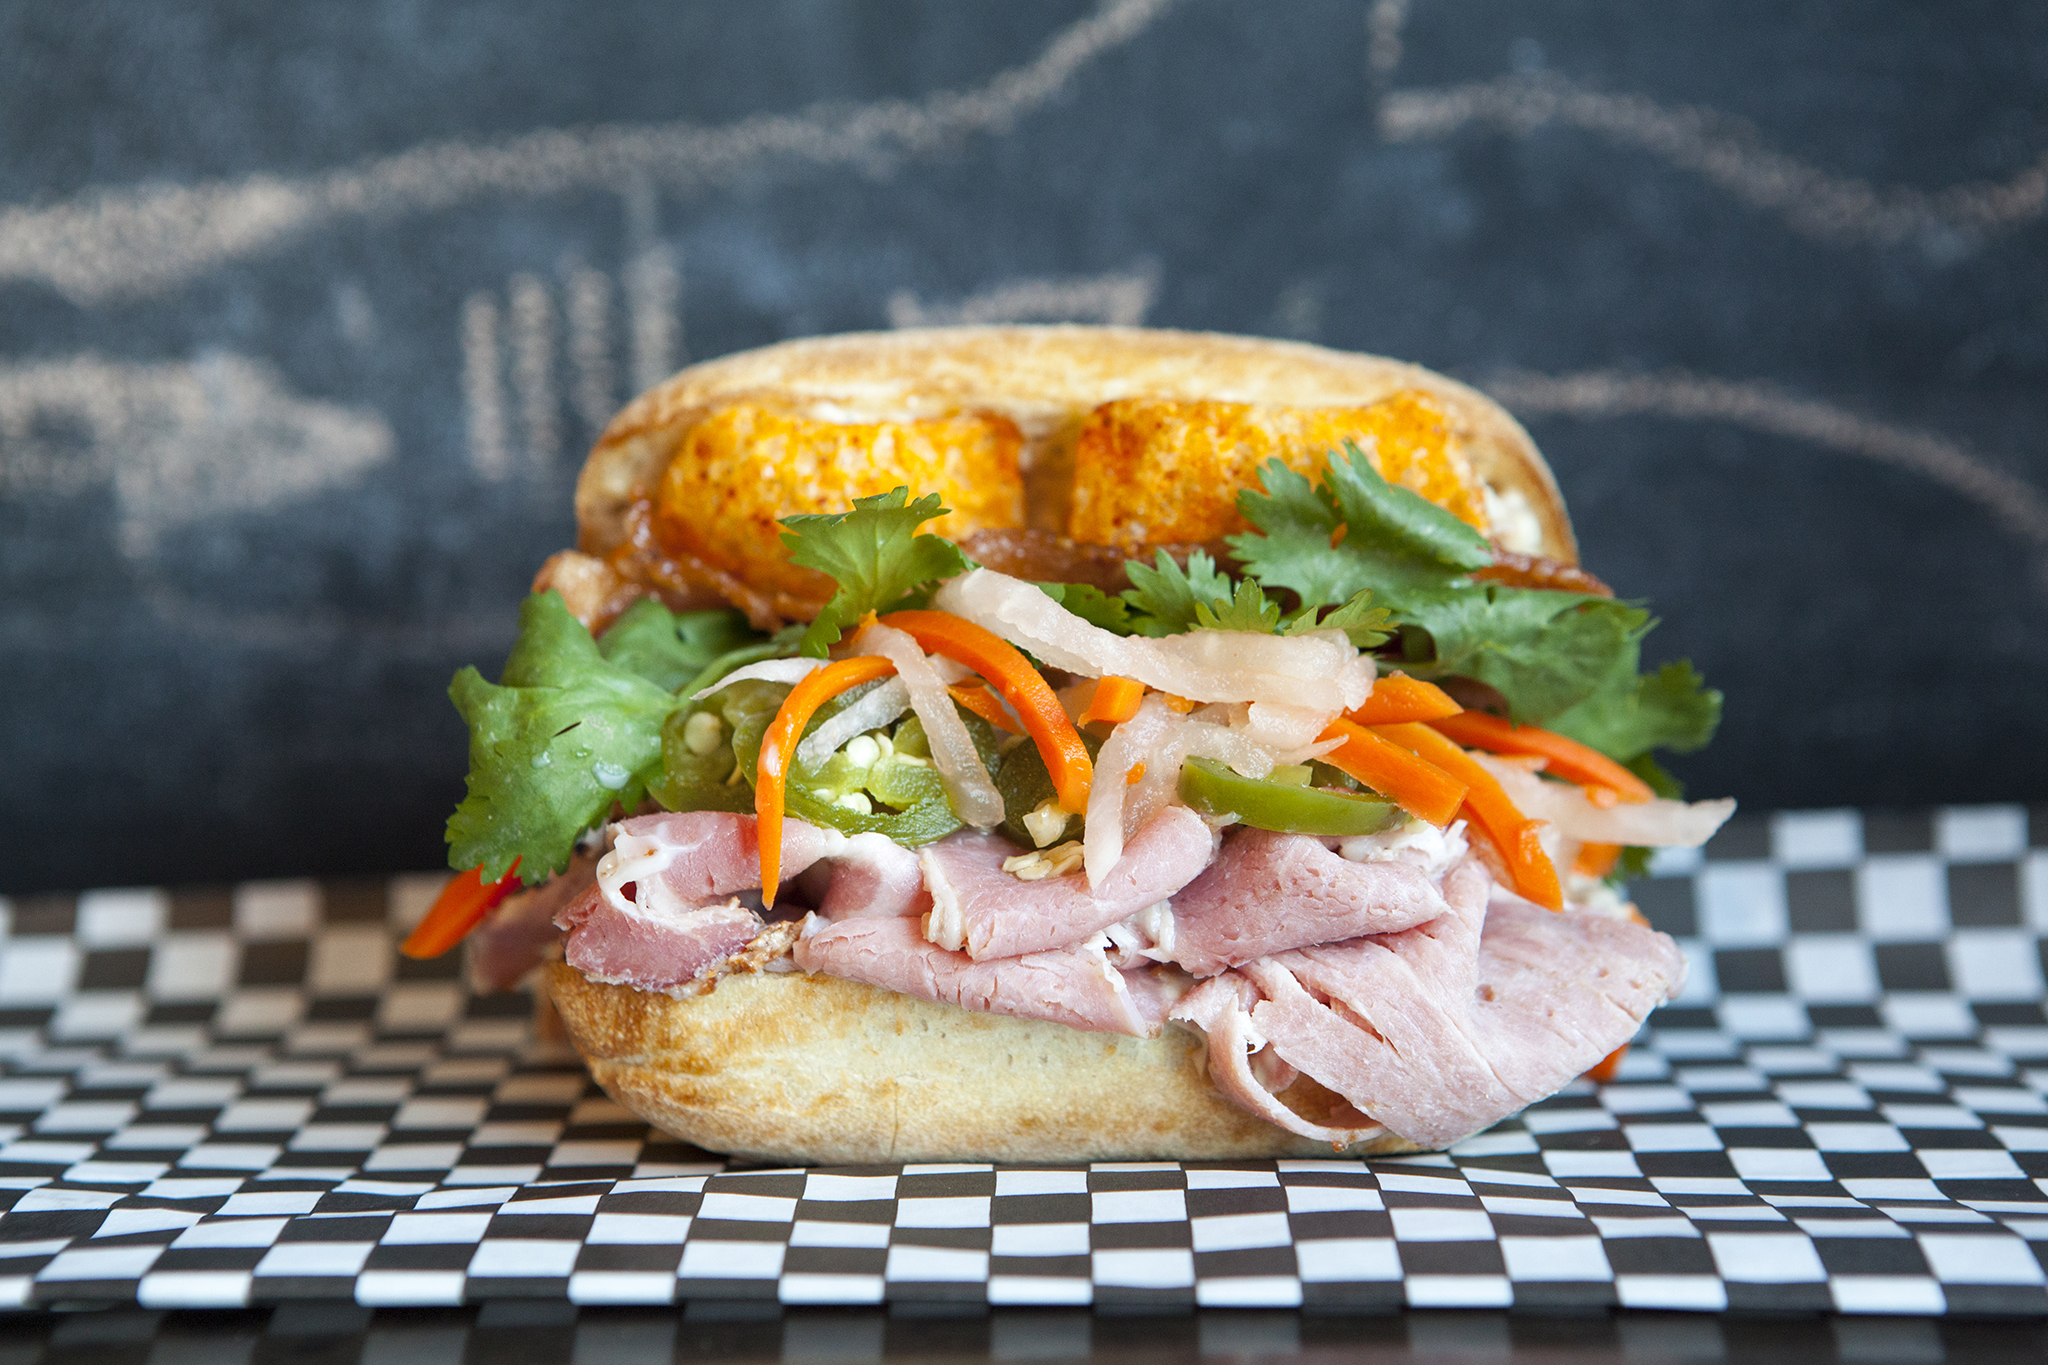 "<p>Banh mi at <a href=""http://www.timeout.com/los-angeles/restaurants/ink-sack"">ink.sack</a></p>"